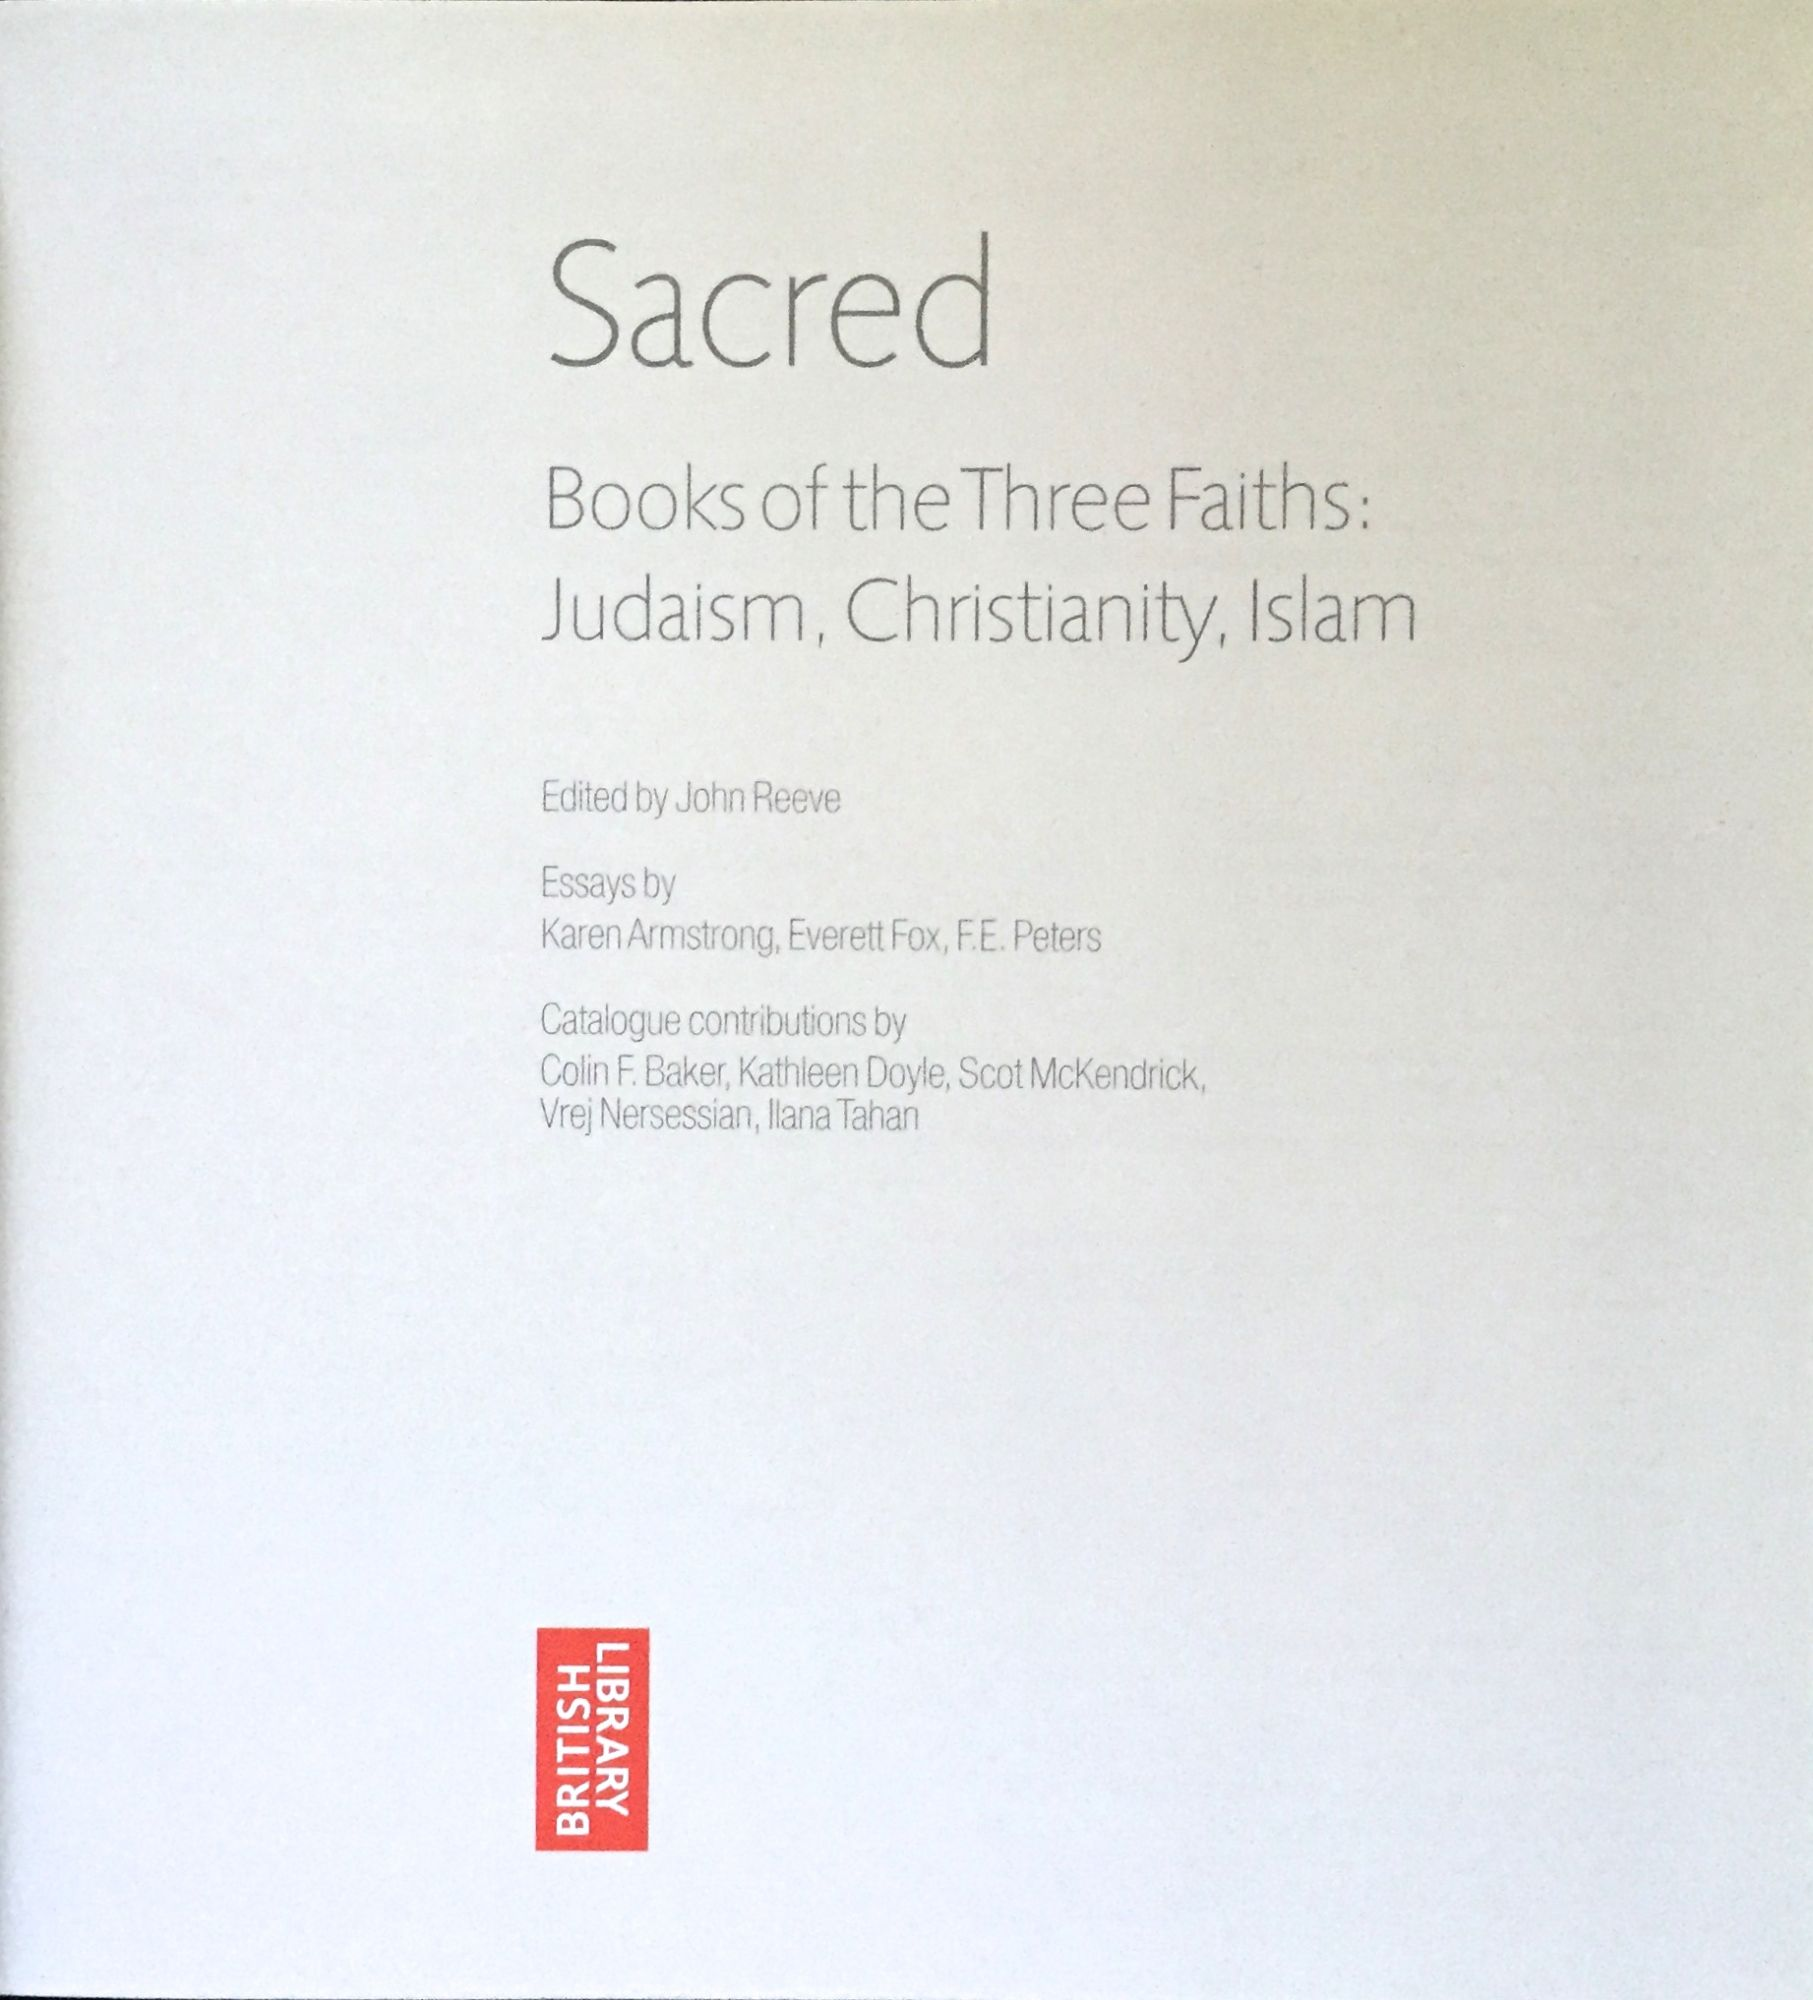 sacred books of the three faiths judaism christianity islam sacred books of the three faiths judaism christianity islam essays by karen armstrong everett fox f e peters